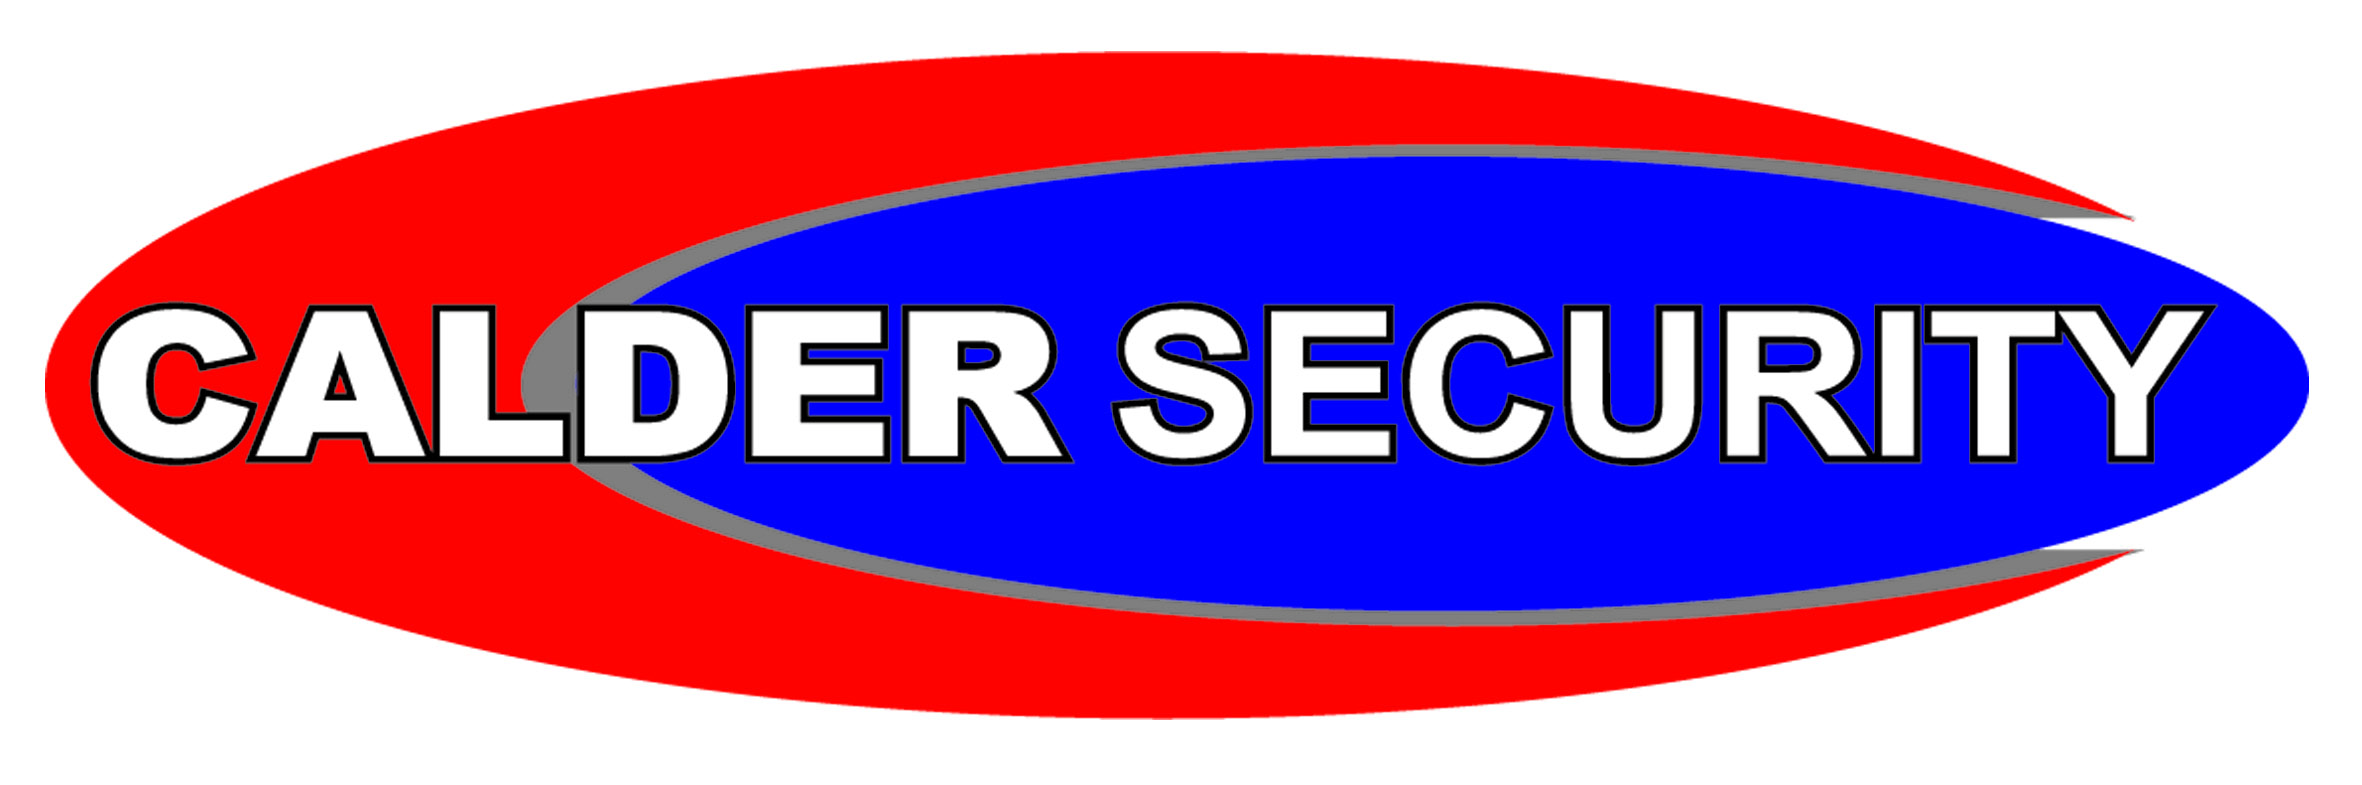 Calder Security Ltd